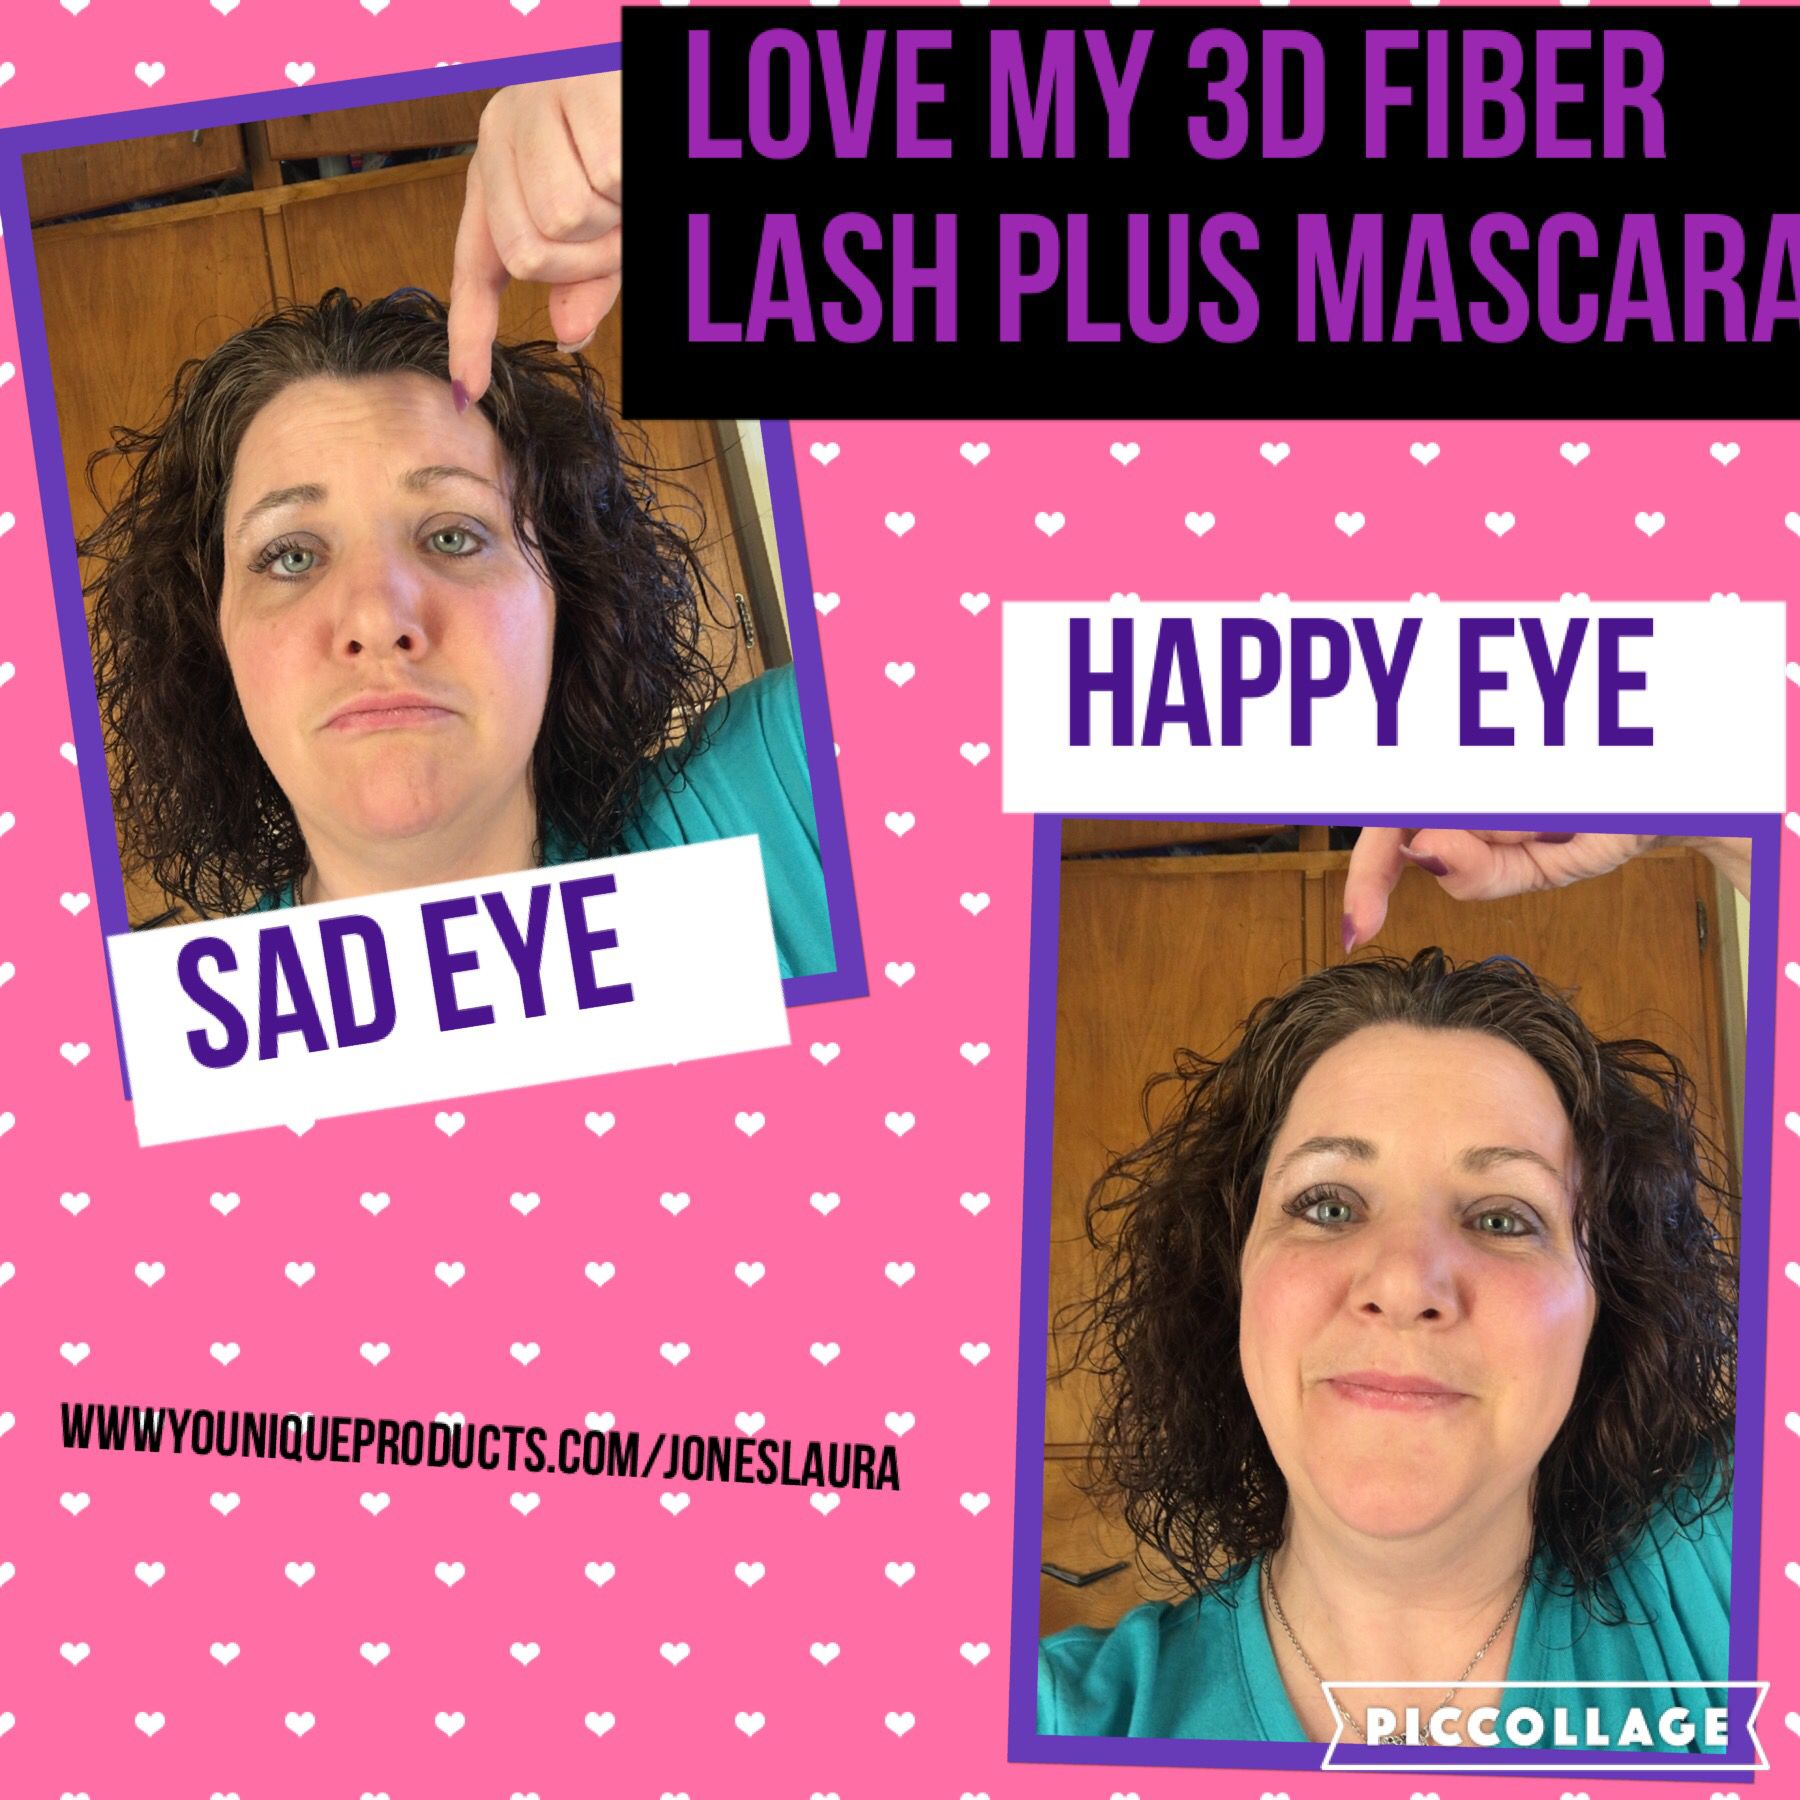 Ask me how to get your happy eyes today www.youniqueproducts.com/joneslaura